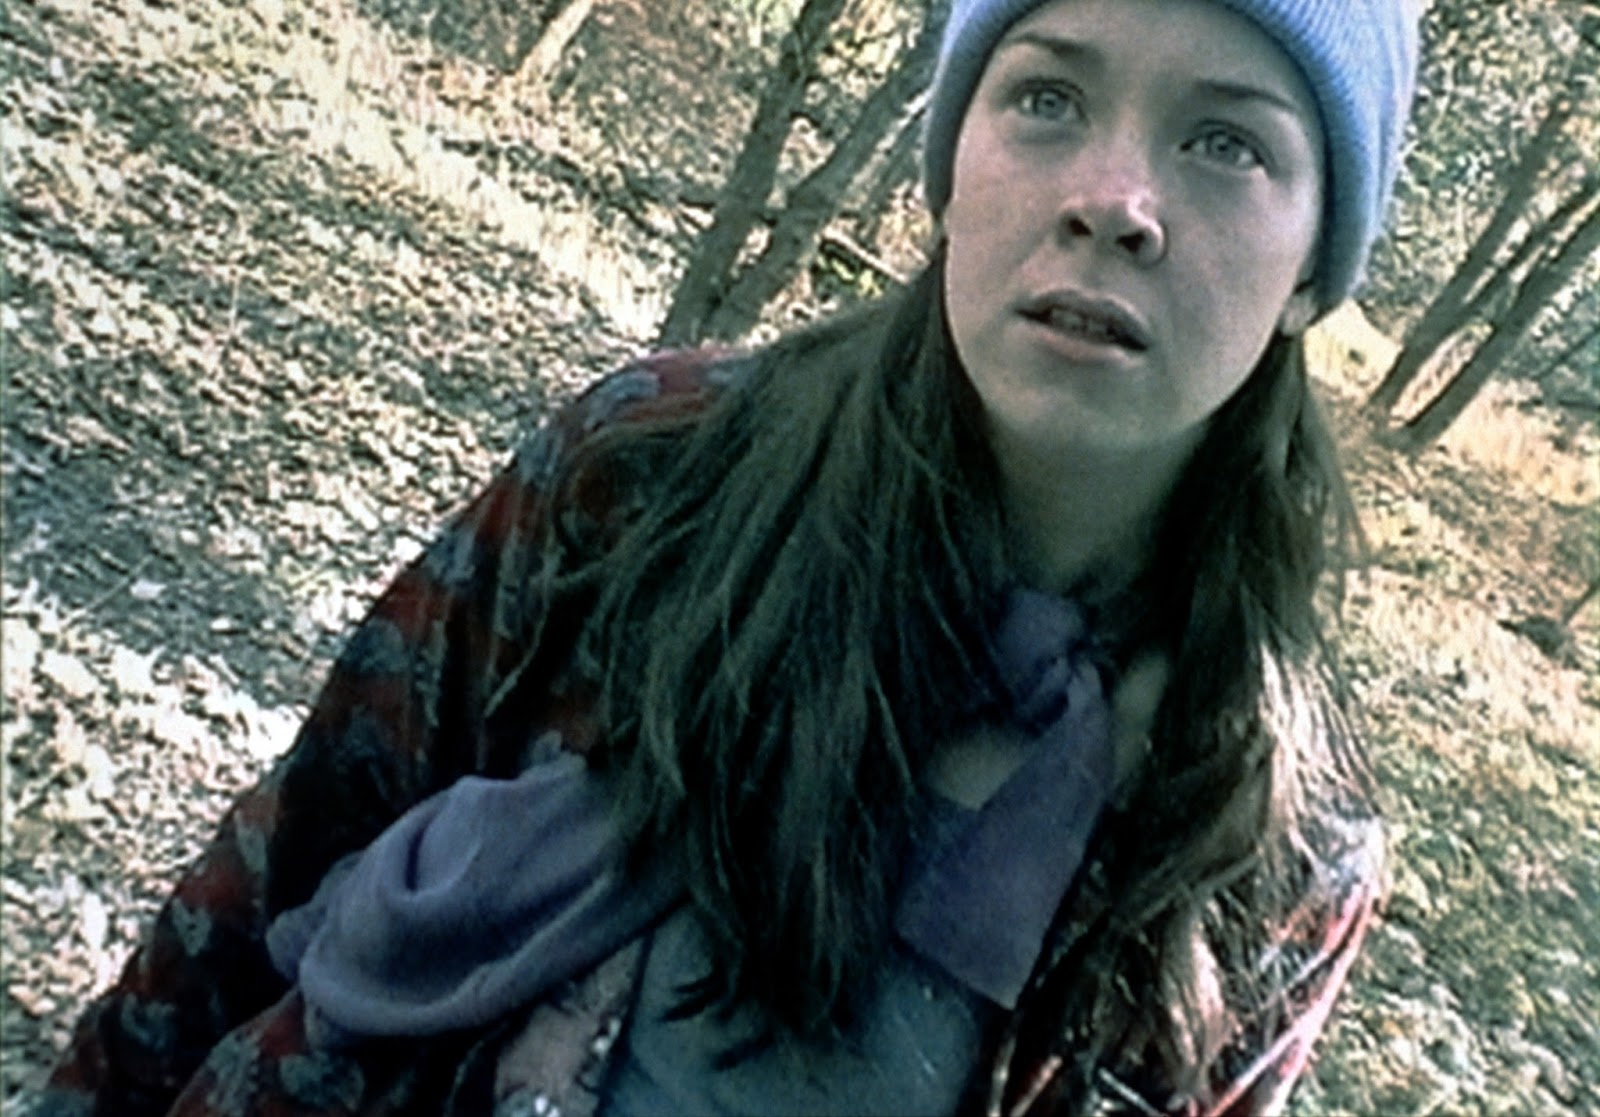 Heather Donahue lost in the woods in The Blair Witch Project (1999)